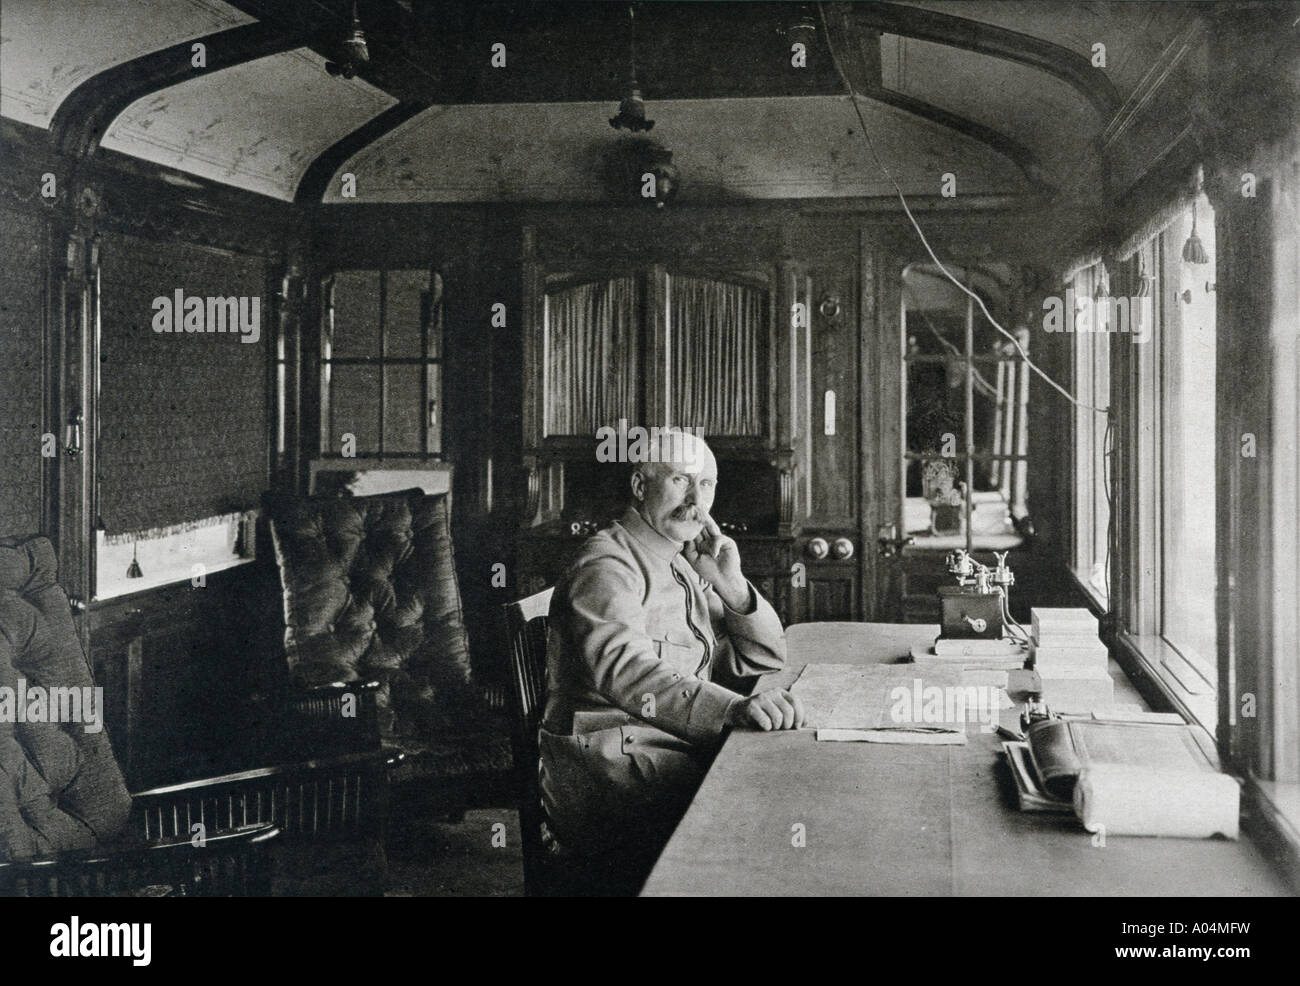 French military commander Philippe Petain 1856 to 1951 sitting in railway carriage office in Autumn 1915 - Stock Image